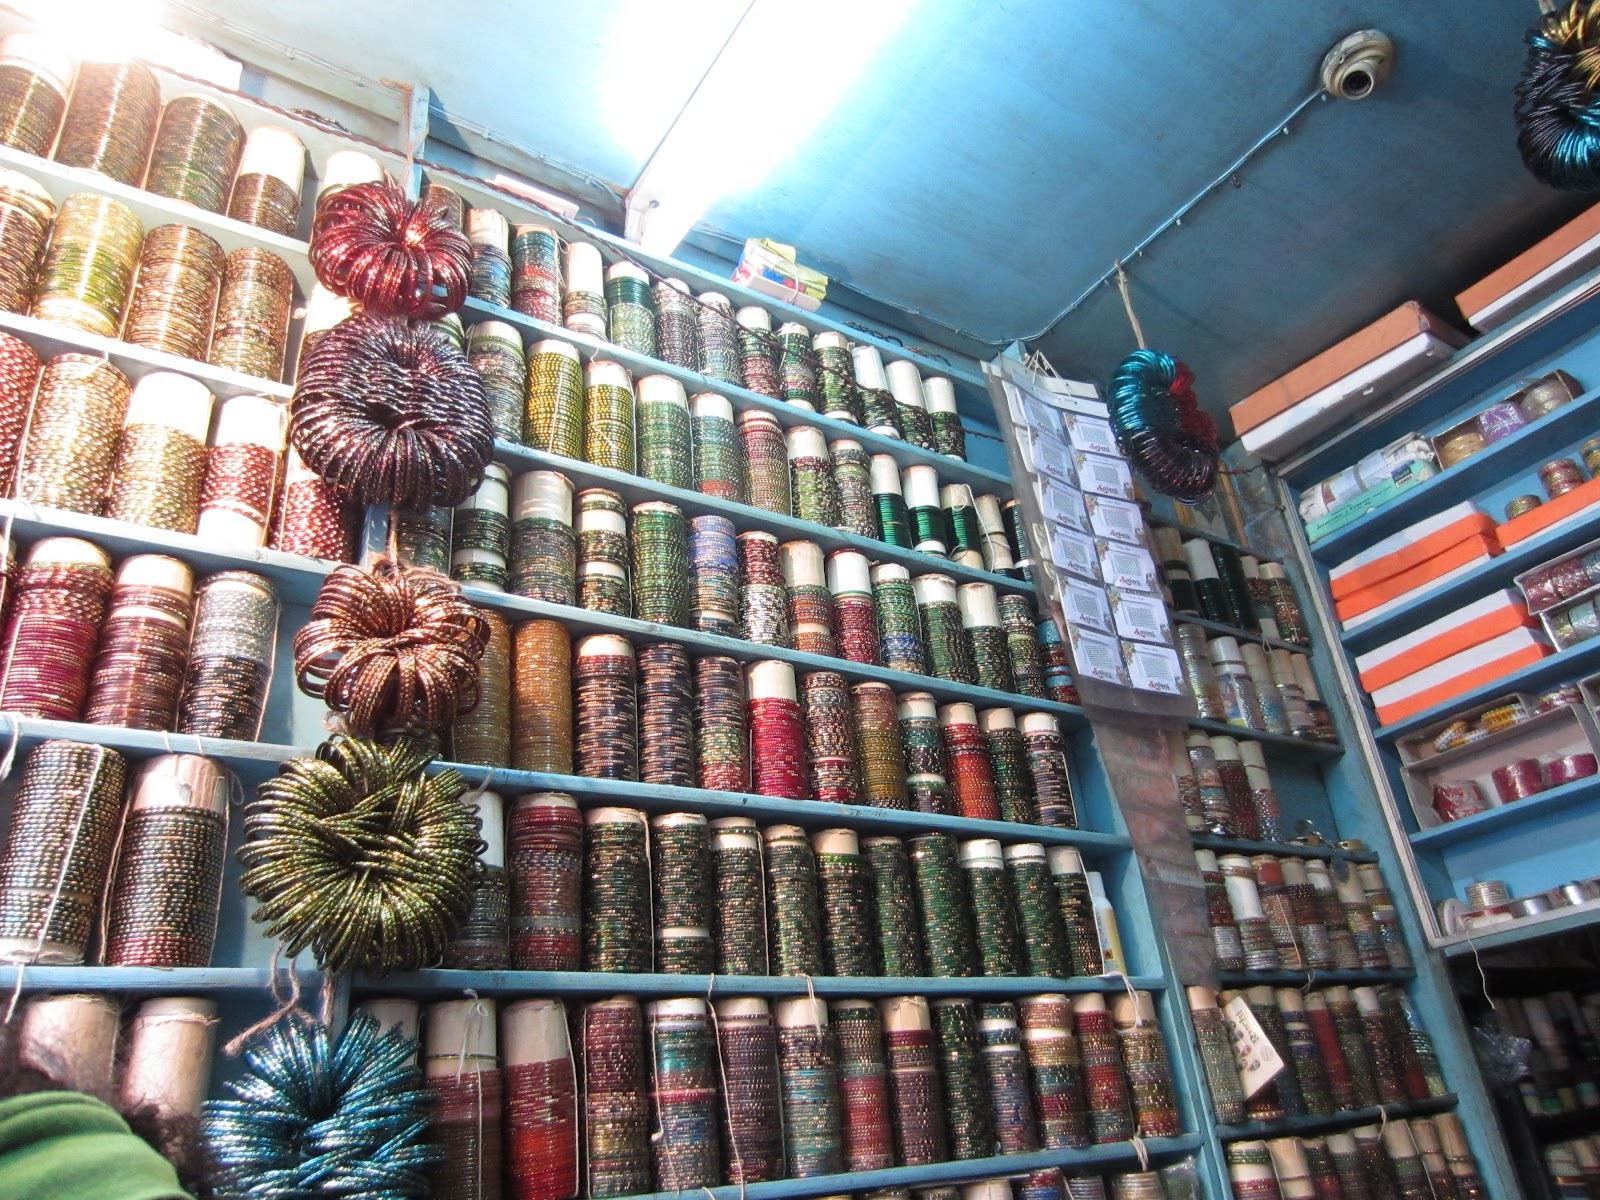 photos shop hyderabad pictures school house dealers near suncity govt sana bangle bangles langar bzdet